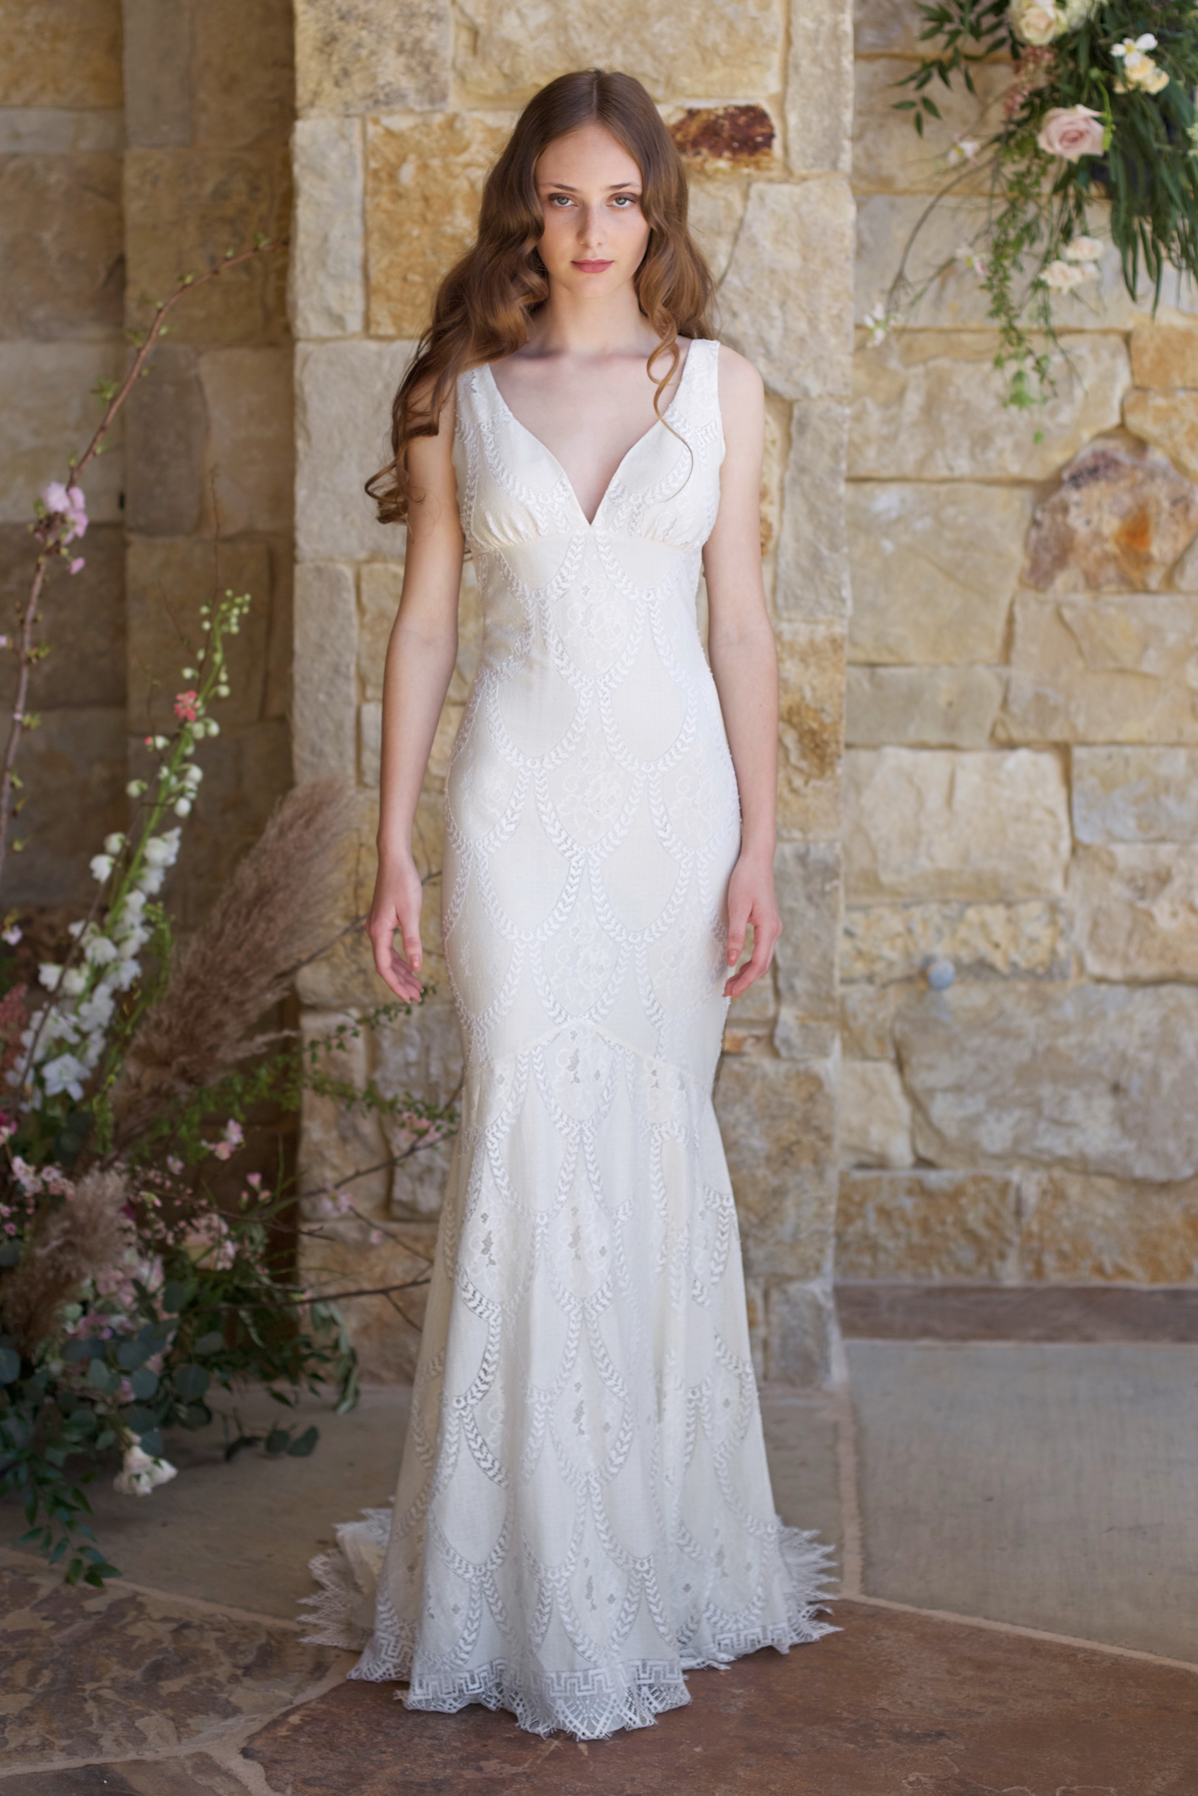 4ae3f70425f0 Toscana - Ecru scallop pattern lace mermaid silhouette with dramatic  scalloped hem and train, and open V back. Lined in Ivory as shown.